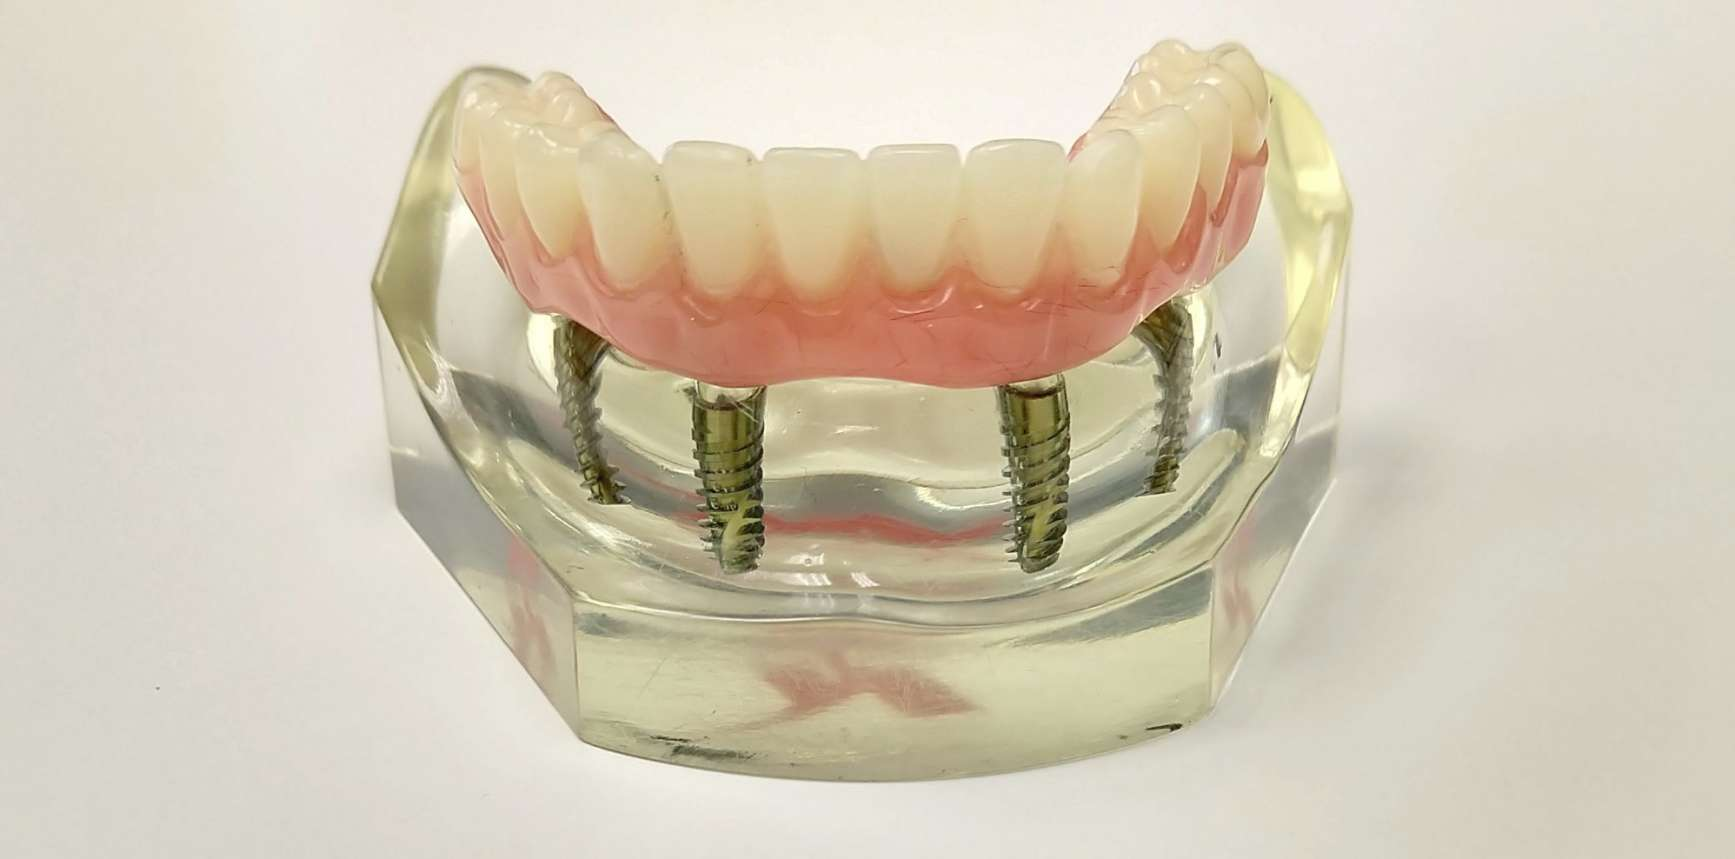 cheapest way to do an all four dental implant